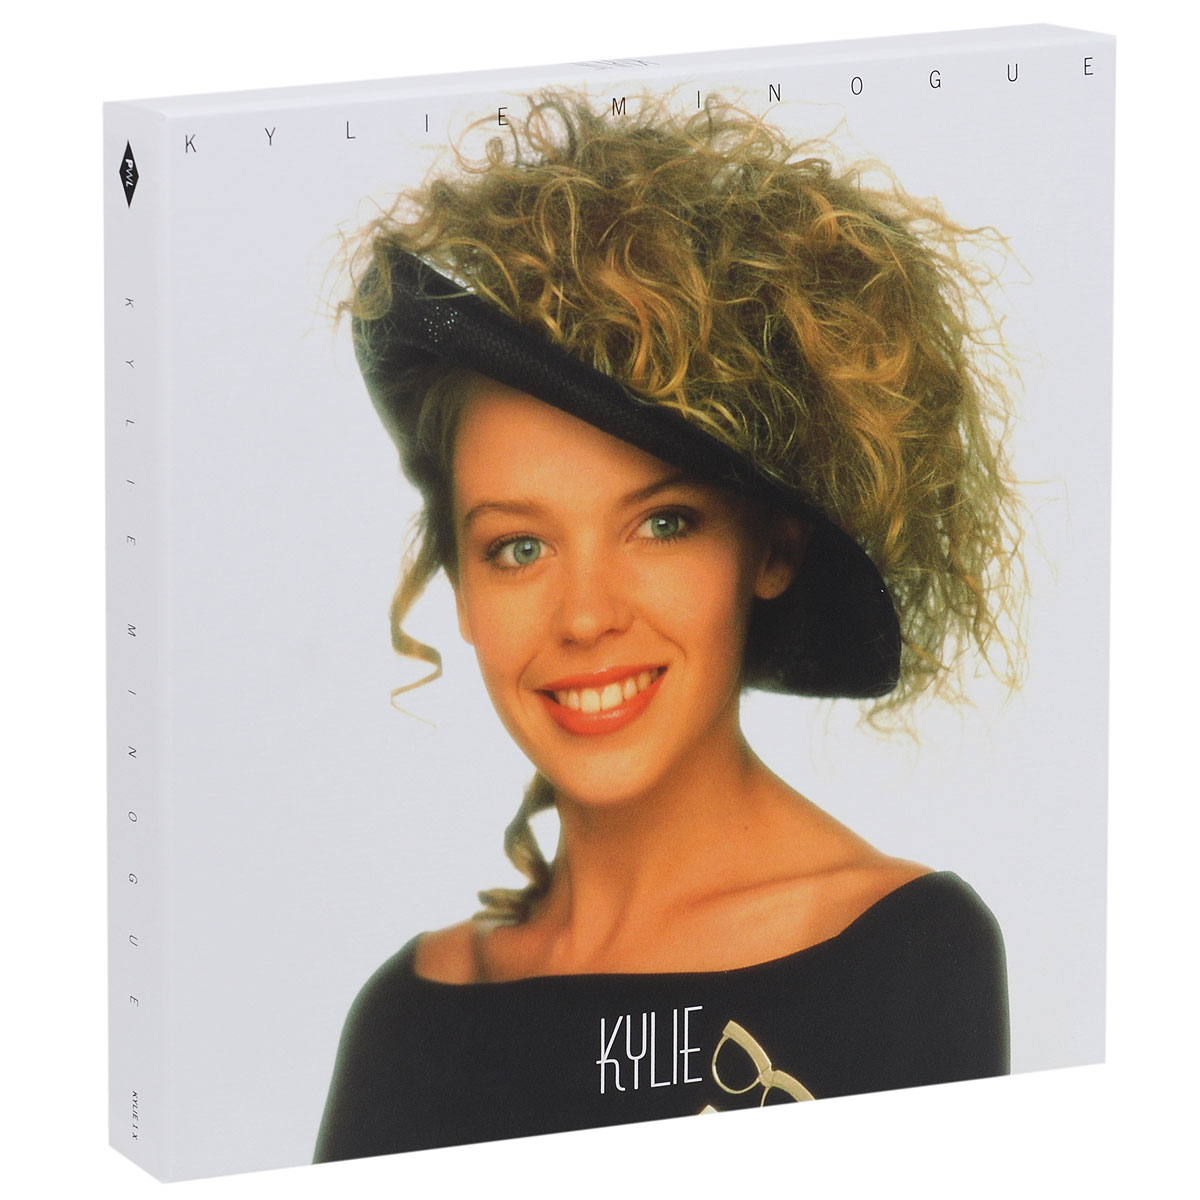 Кайли Миноуг Kylie Minogue. Kylie (2 CD + DVD + LP) кайли миноуг kylie minogue enjoy yourself 2 cd dvd lp